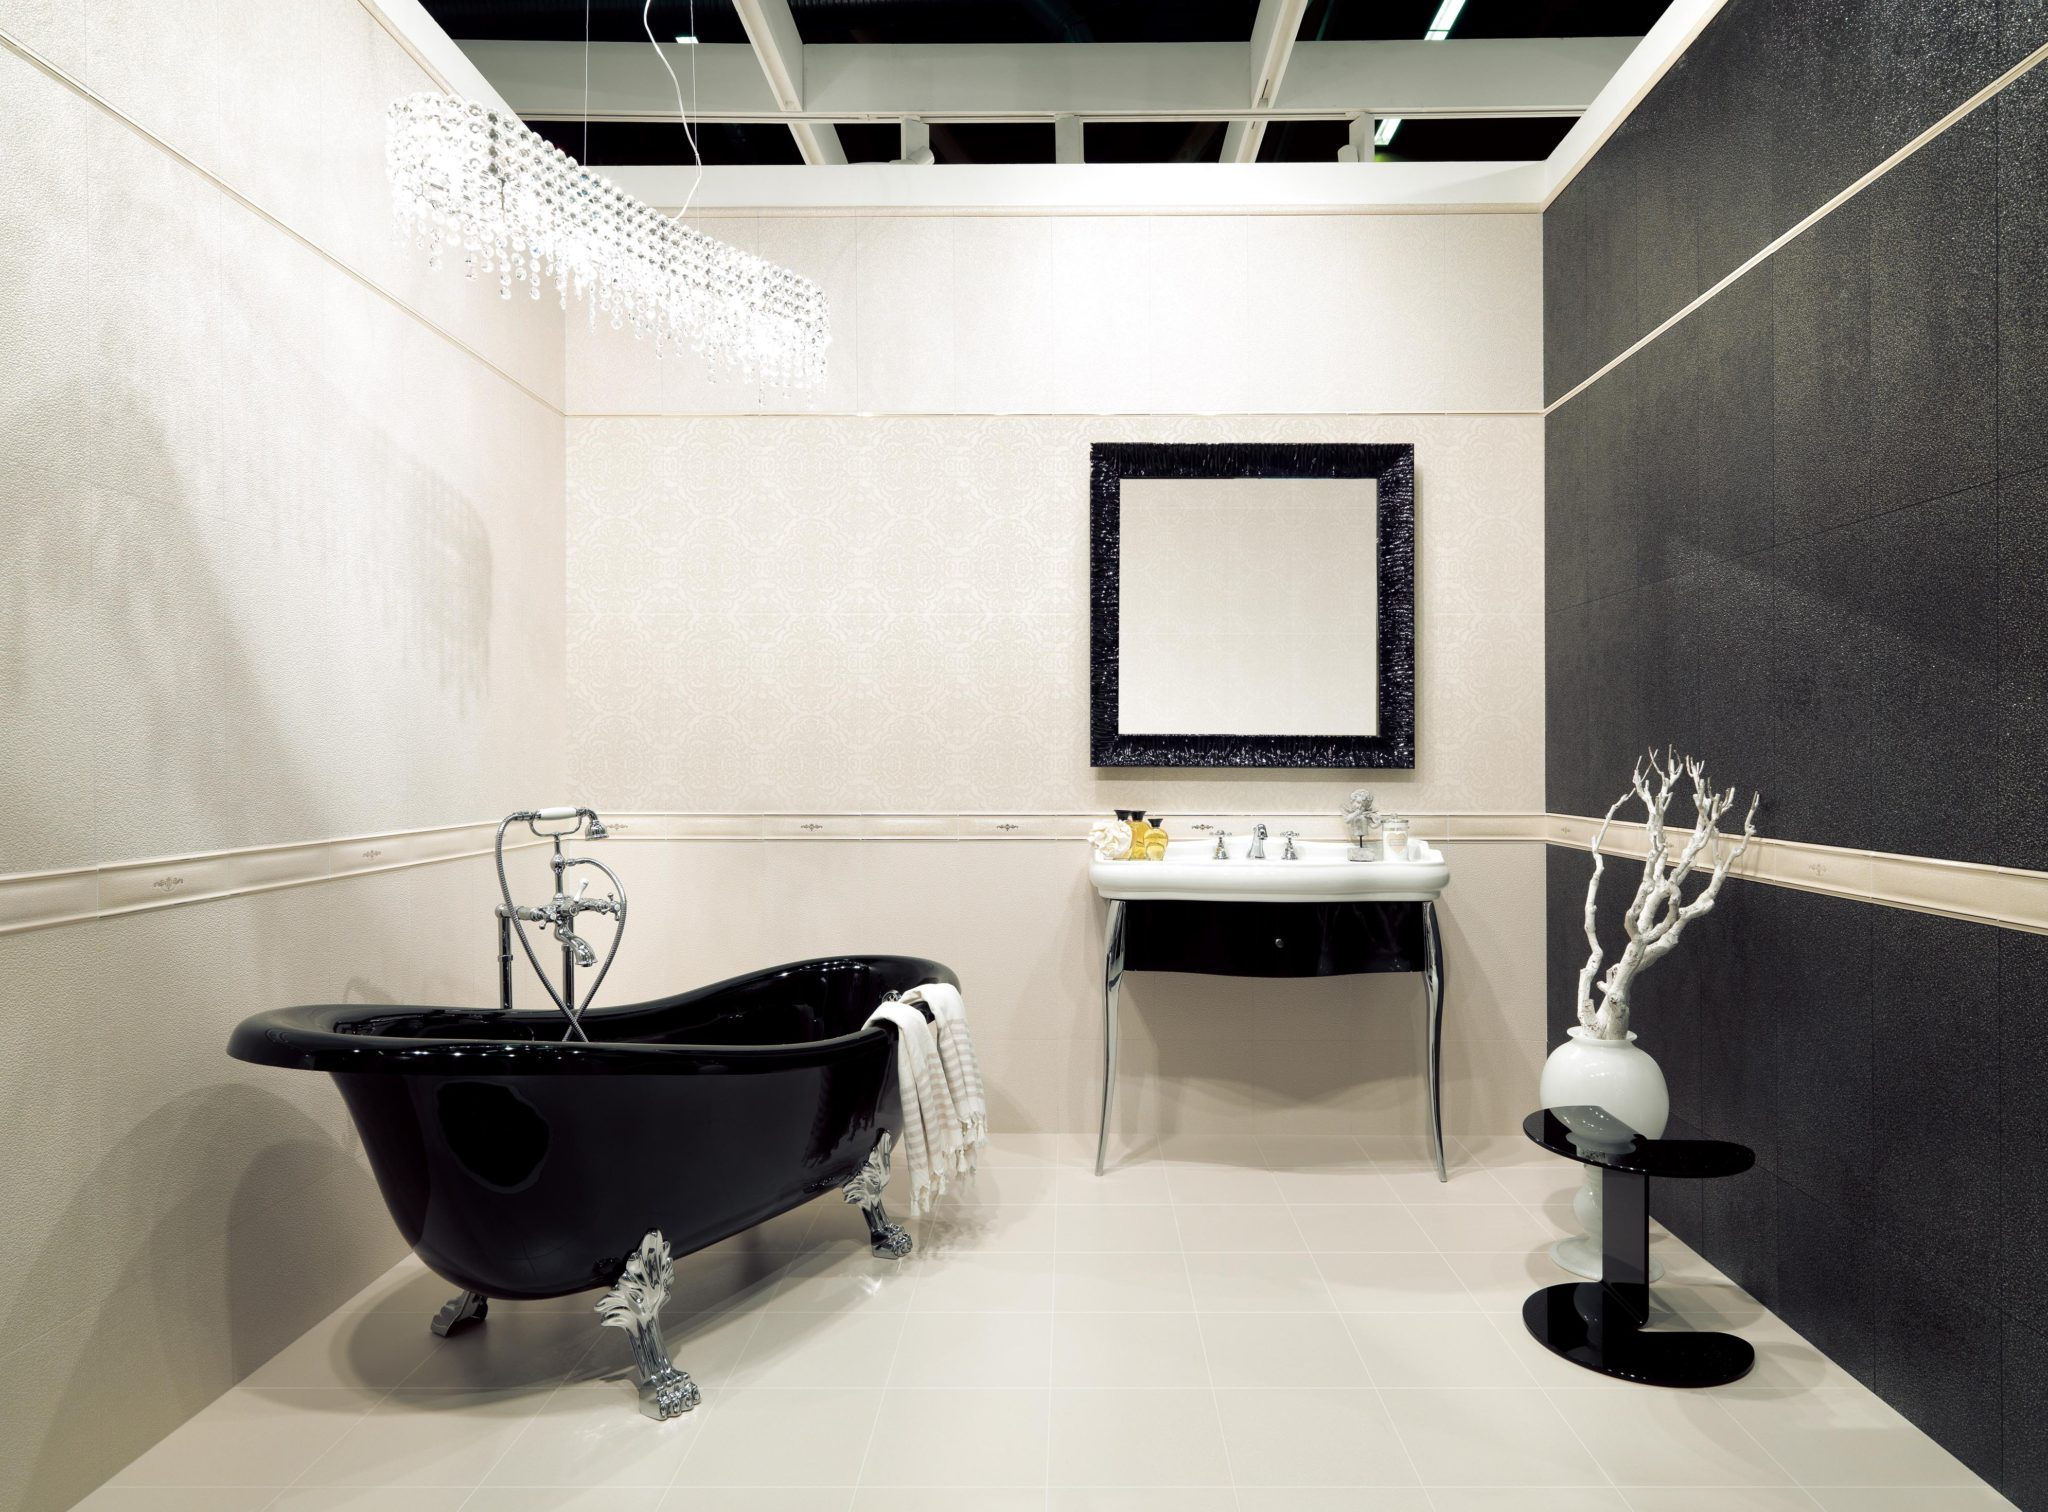 Luxury tiles in partnership with fashion house valentino the interiors addict - Valentino ceramiche bagno ...